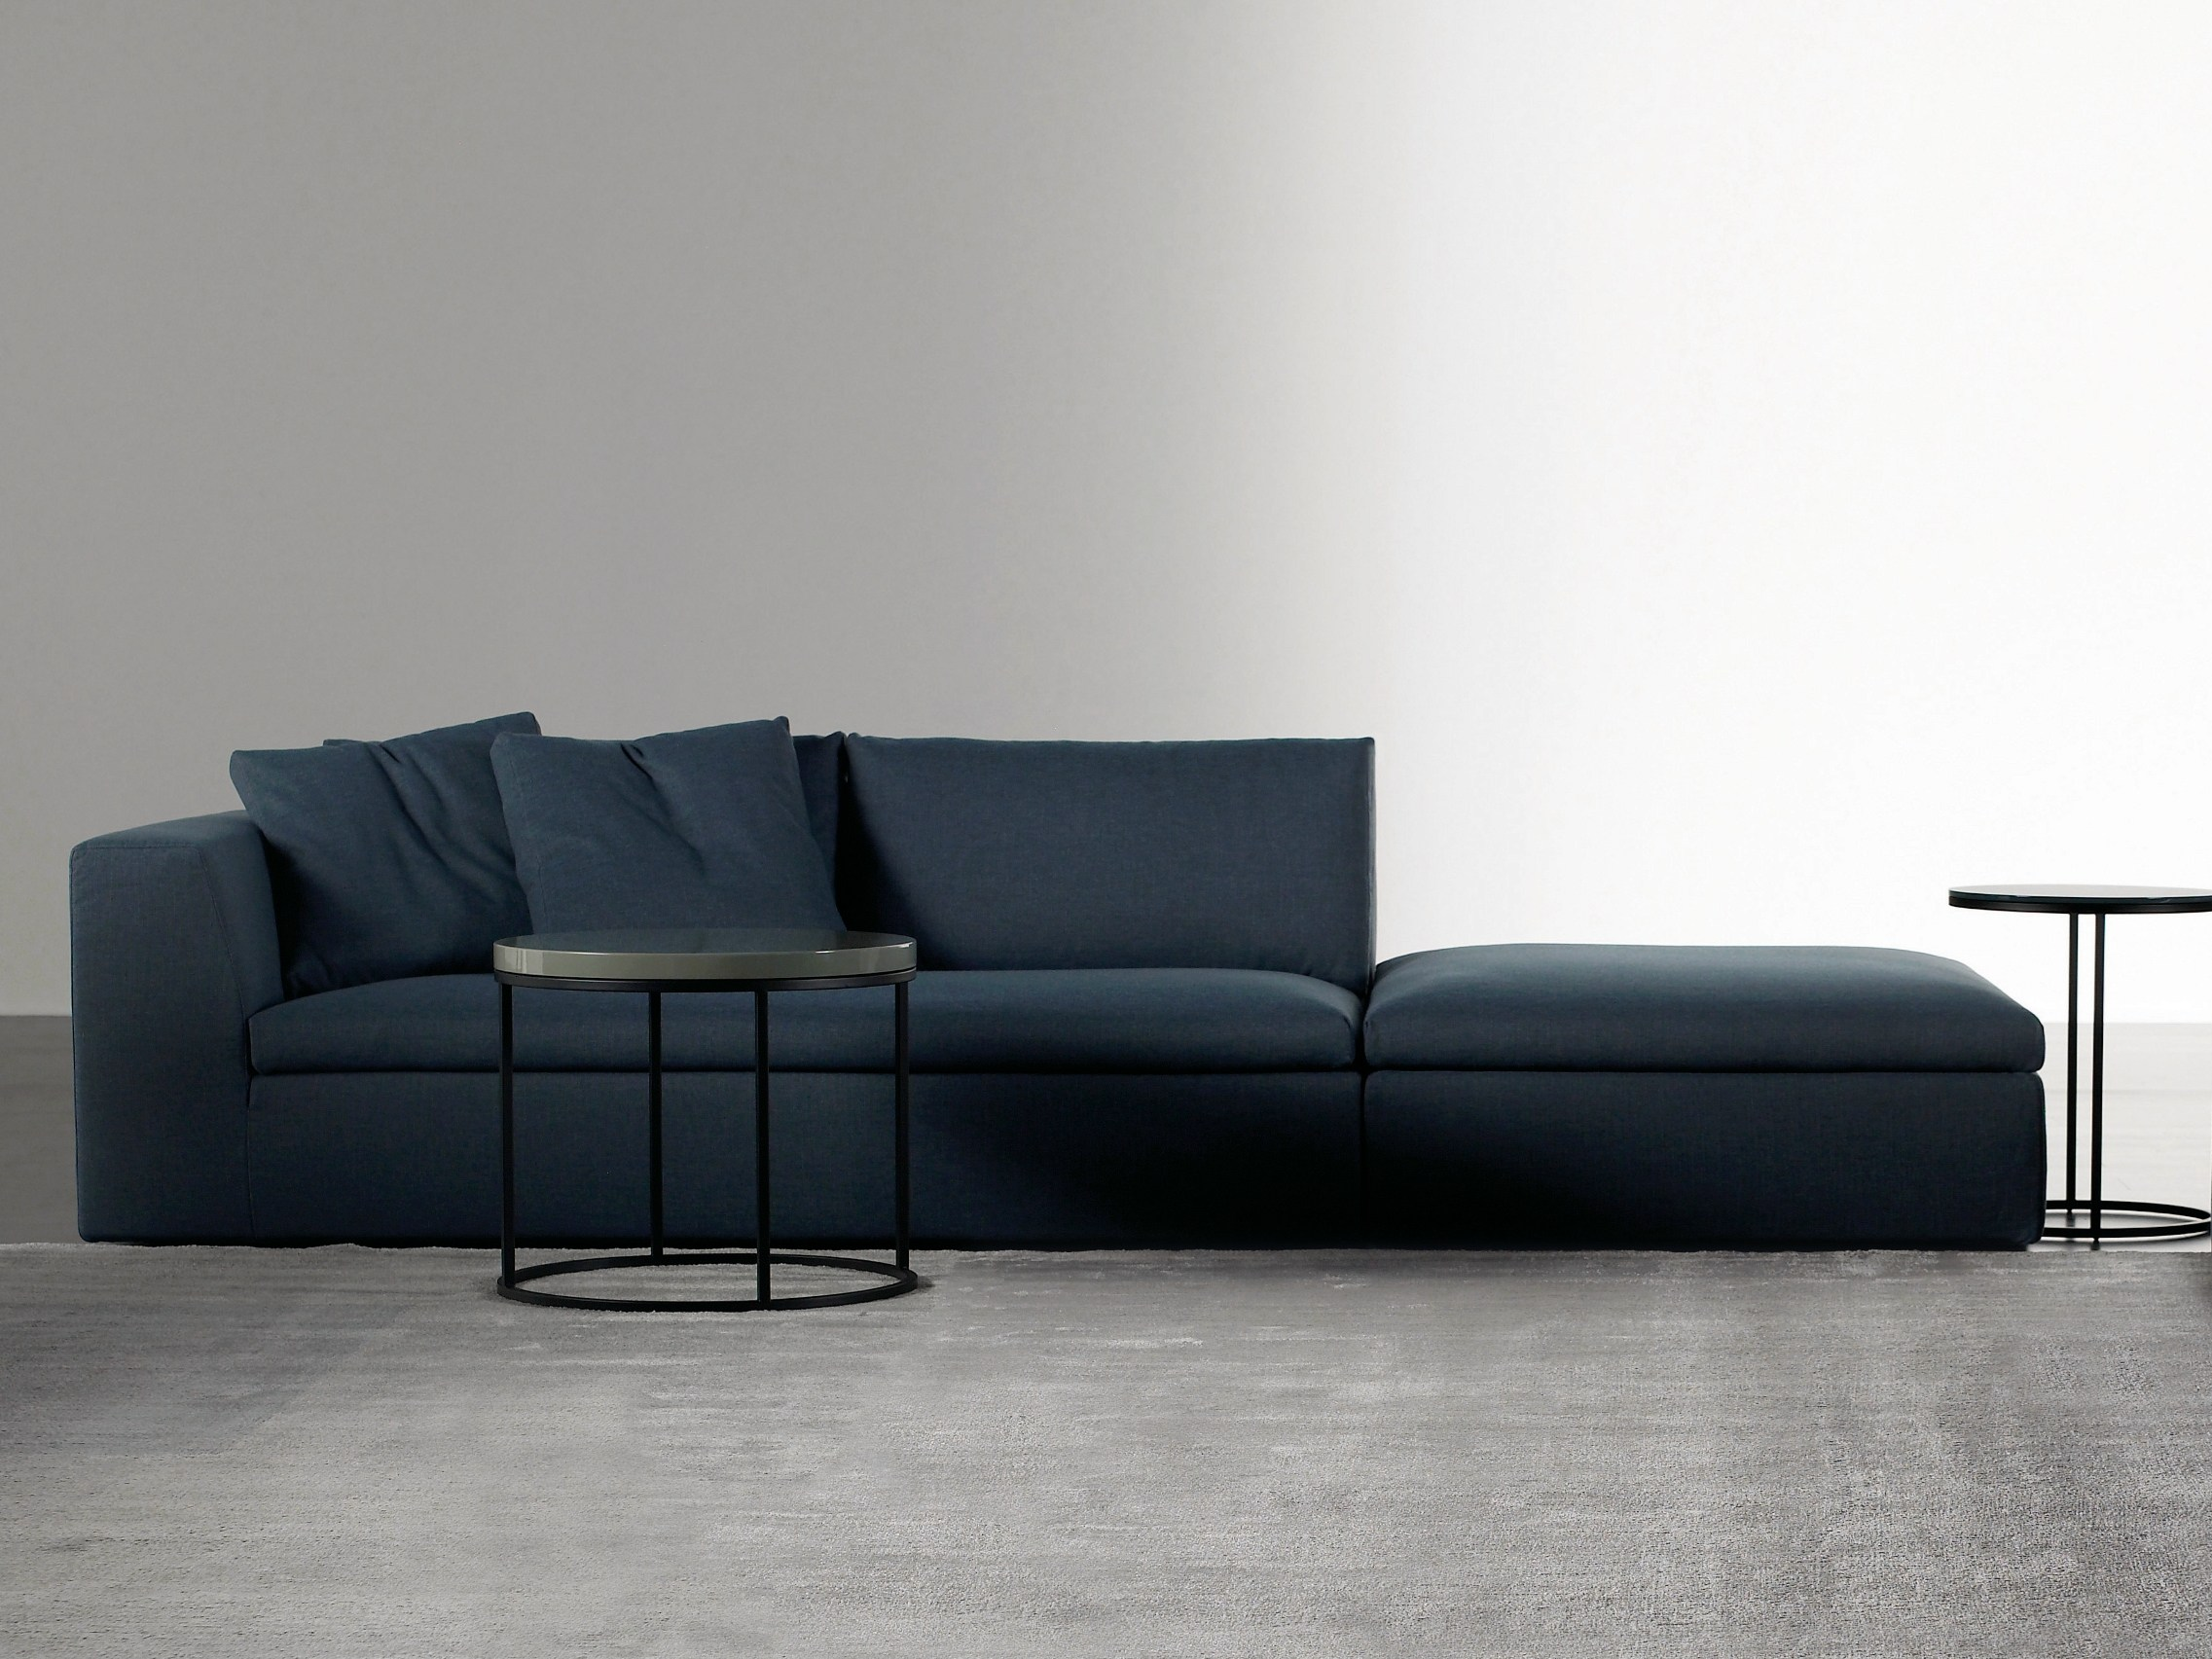 lewis 2 0 sectional sofa by meridiani. Black Bedroom Furniture Sets. Home Design Ideas